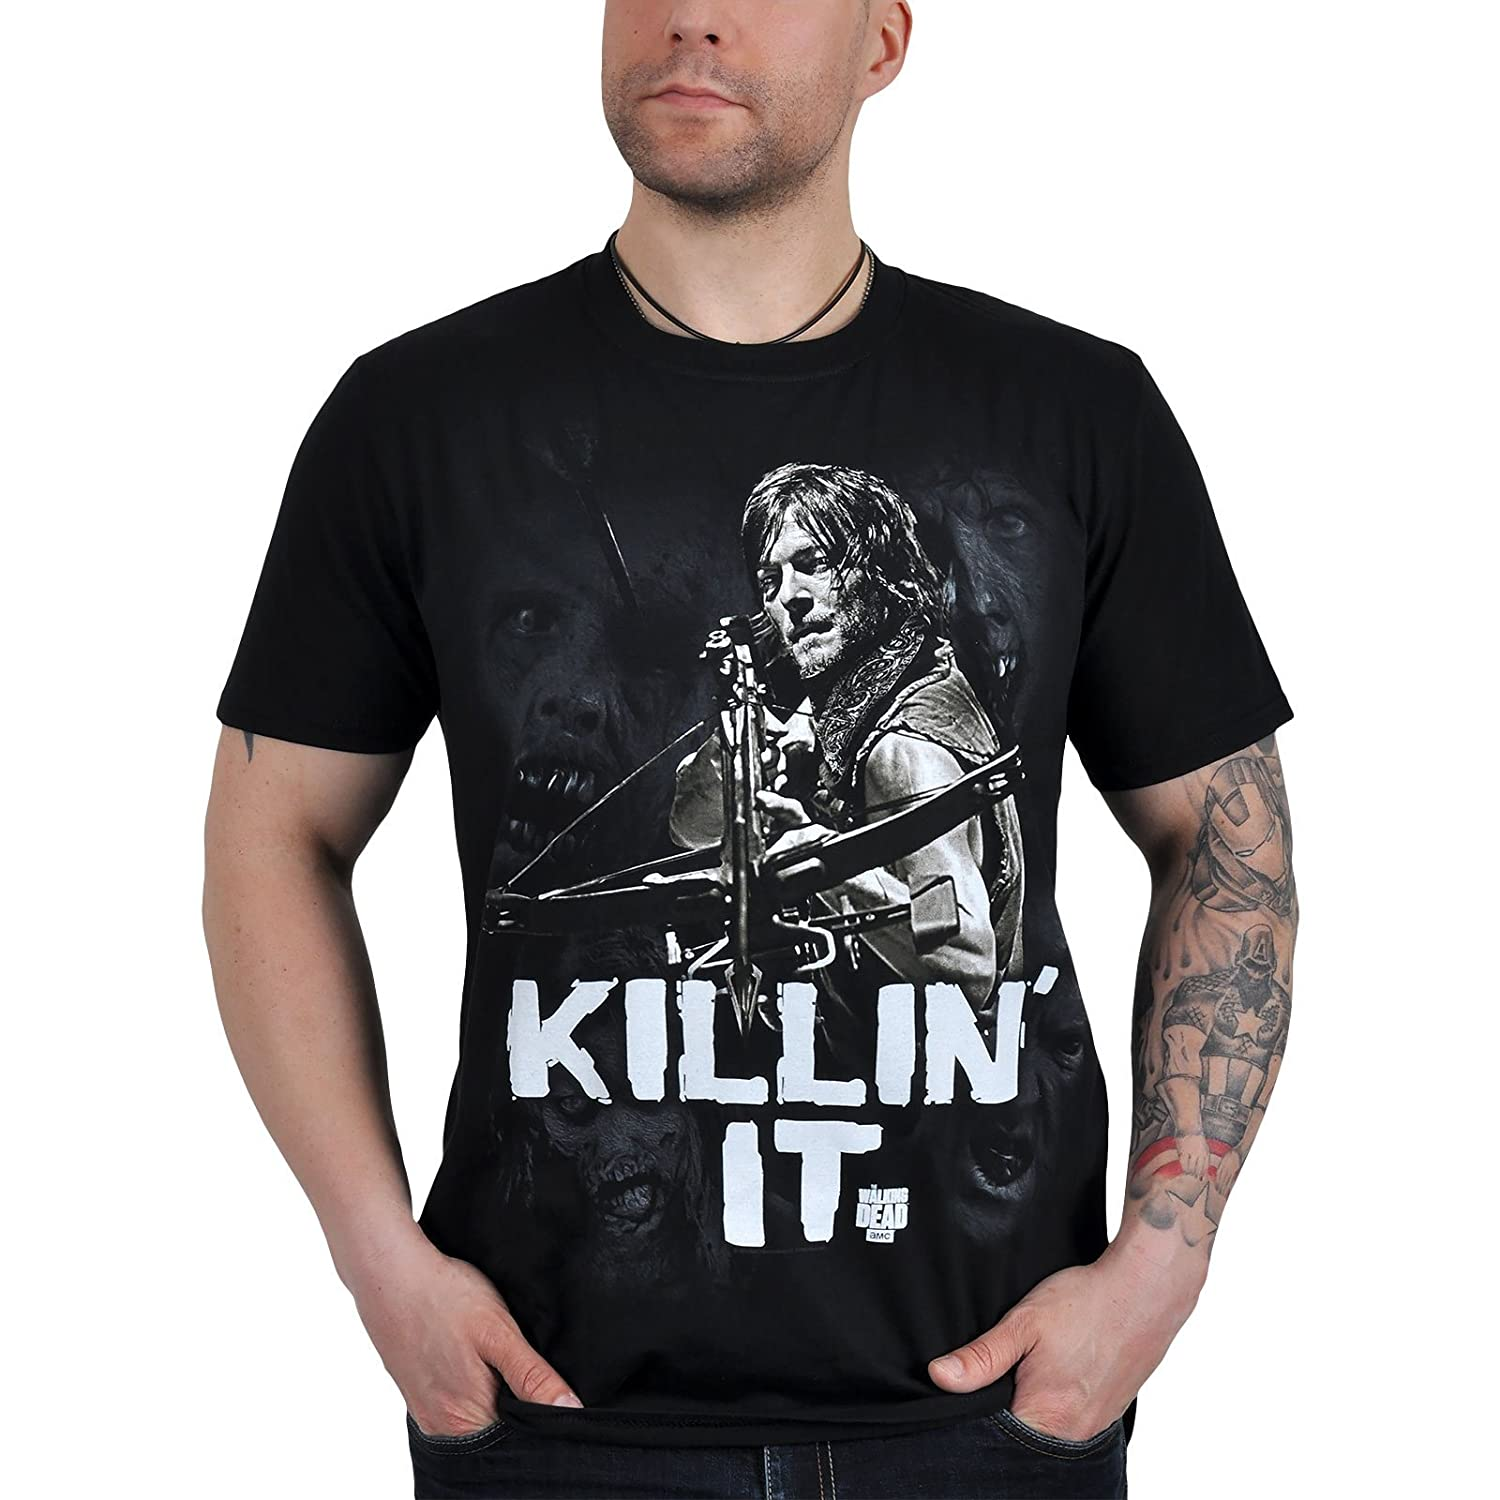 bd0cf8b8f The Walking Dead Official T Shirt Daryl KILLIN IT Zombies Black:  Amazon.co.uk: Clothing